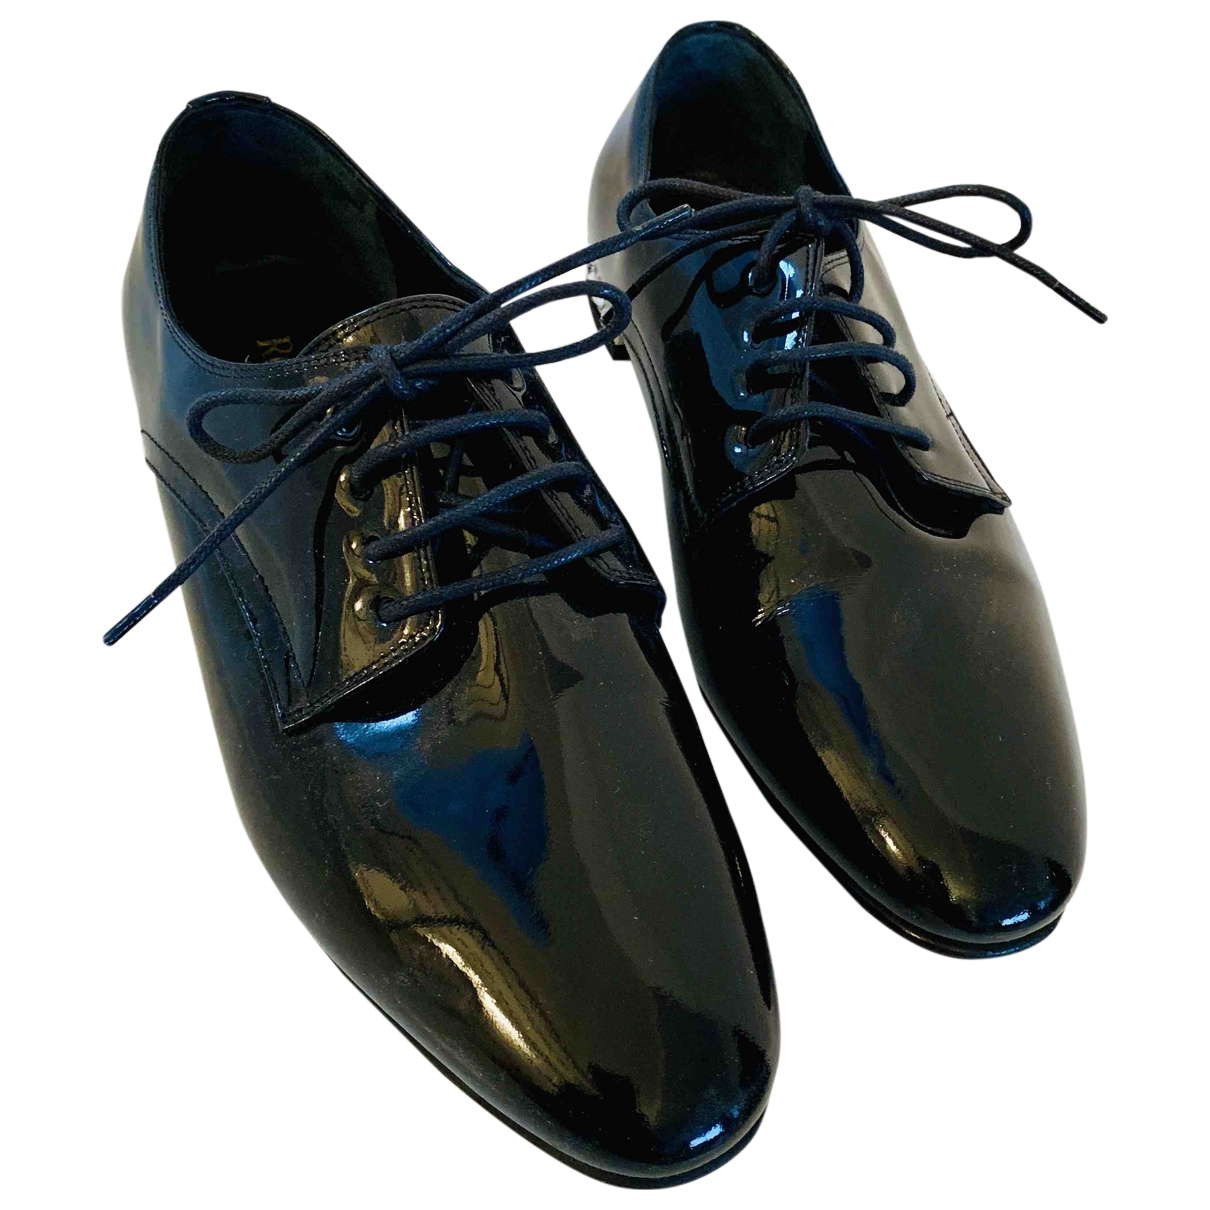 Russell & Bromley \N Black Patent leather Lace ups for Women 36 EU